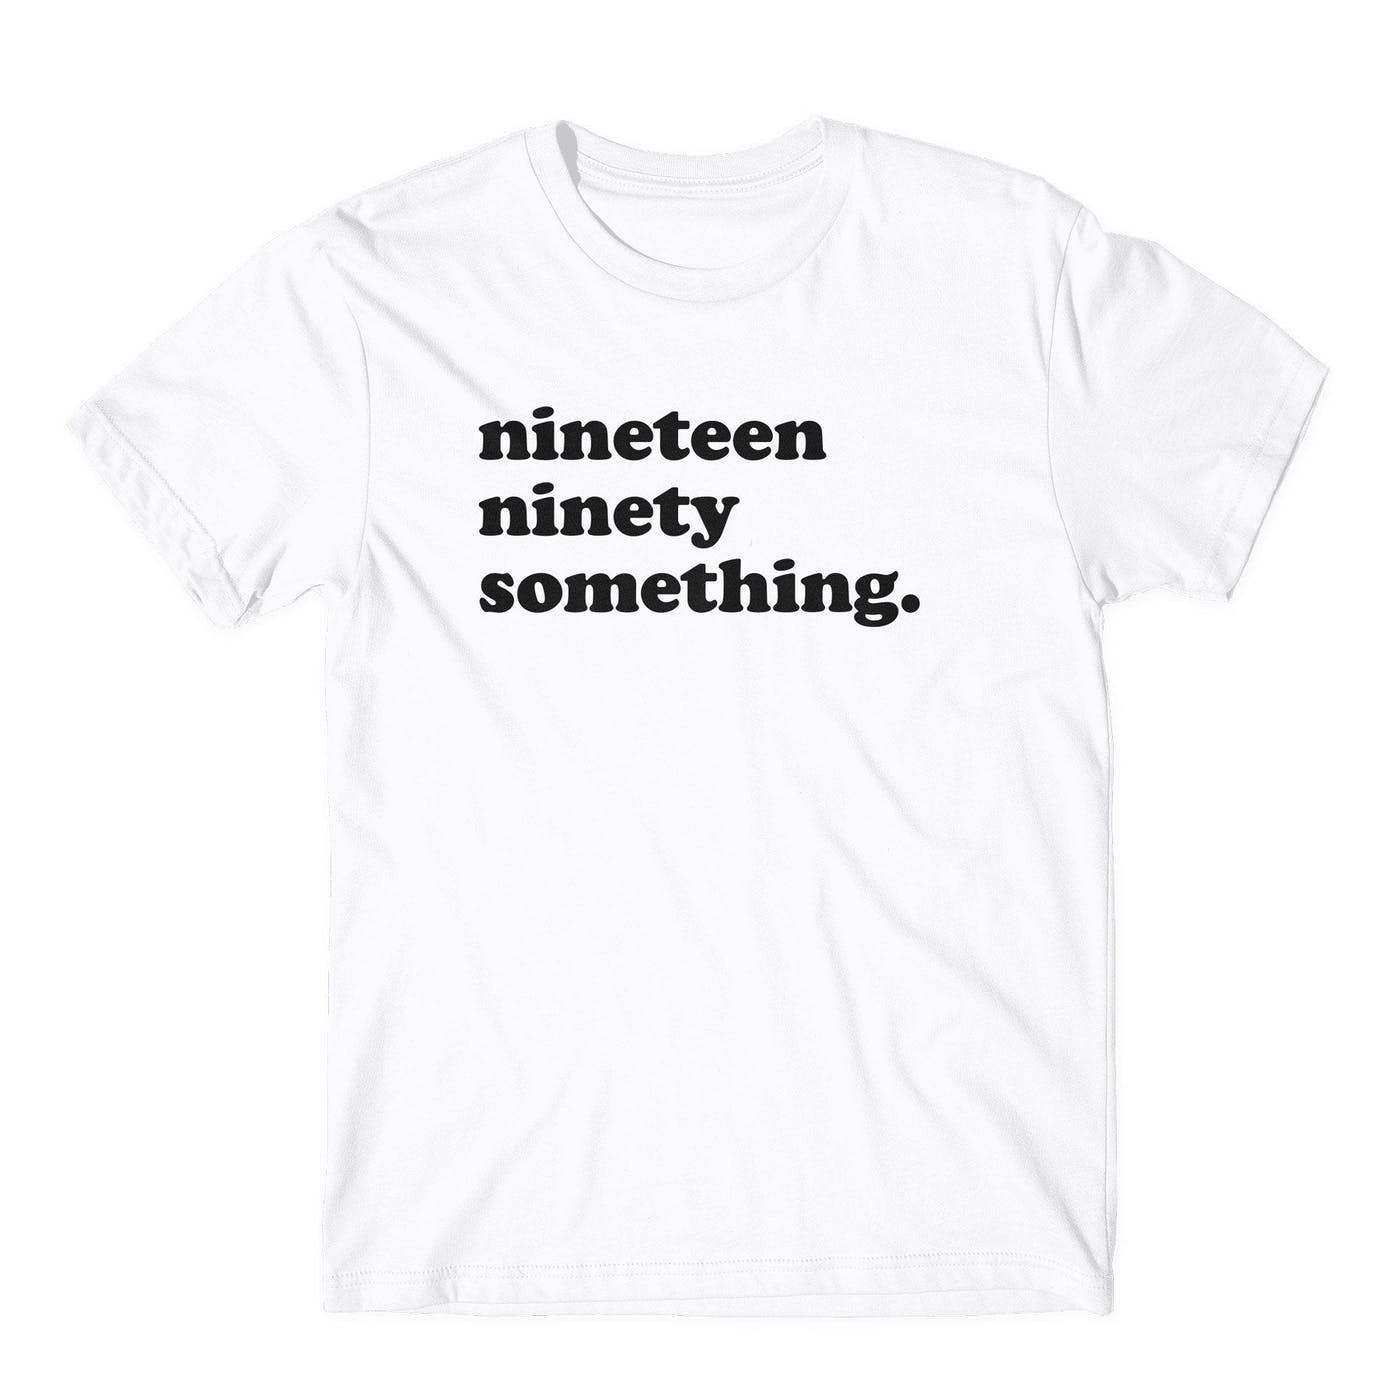 90s Nineteen Ninety Something White Tee